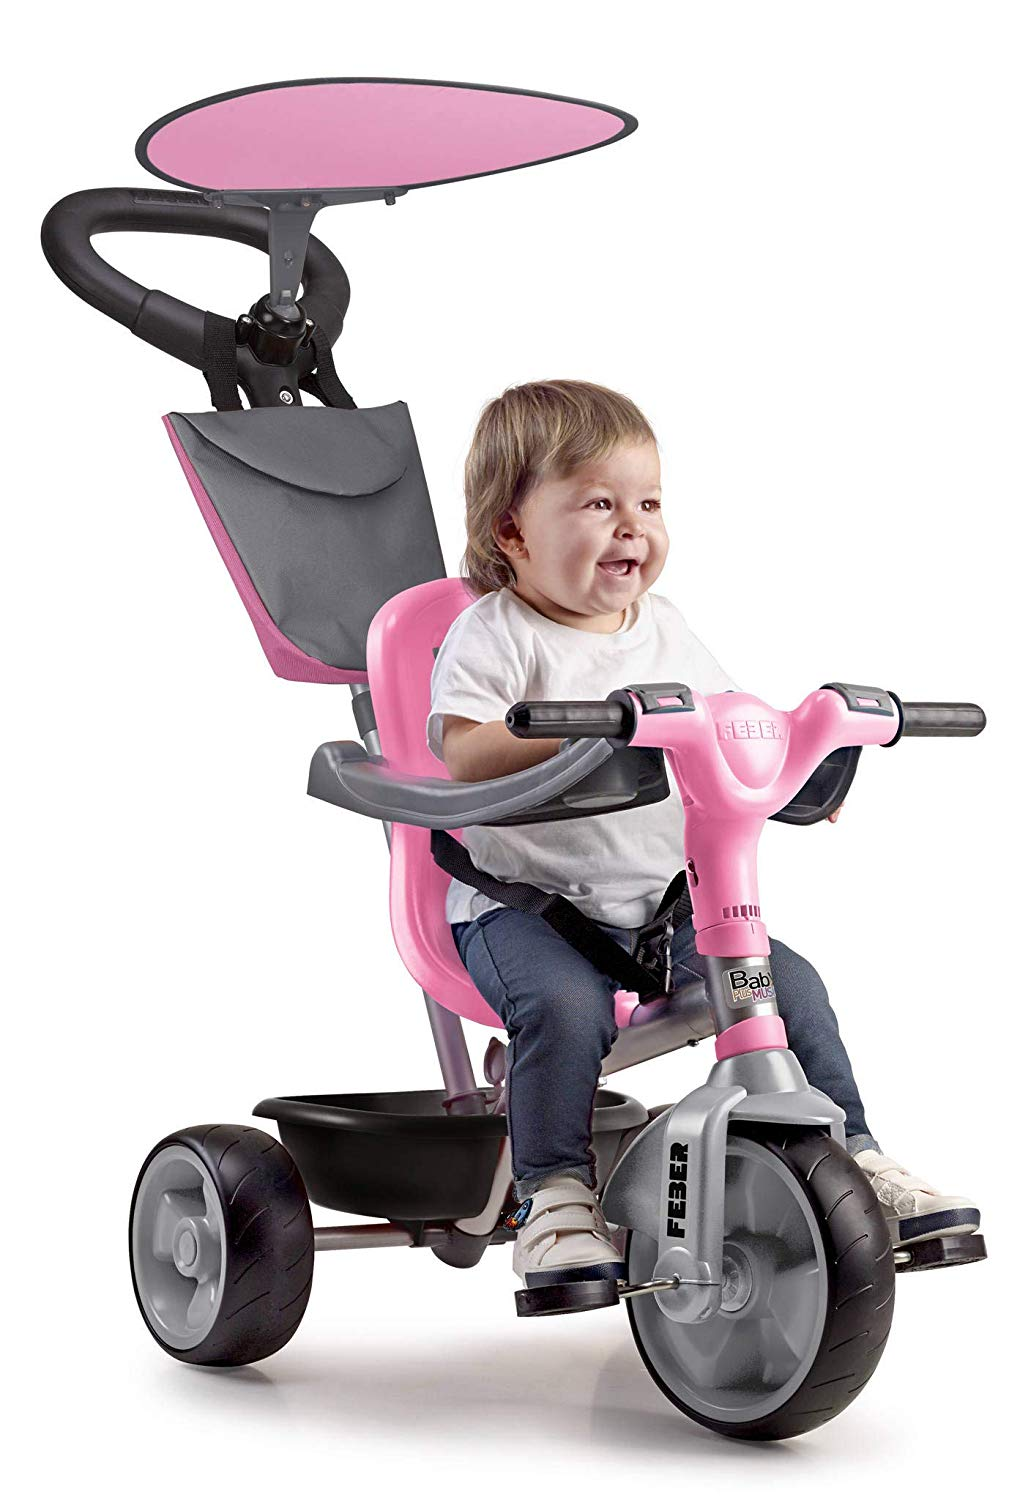 TRICICLO BABY PLUS MUSIC/PINK 12132 - N14319